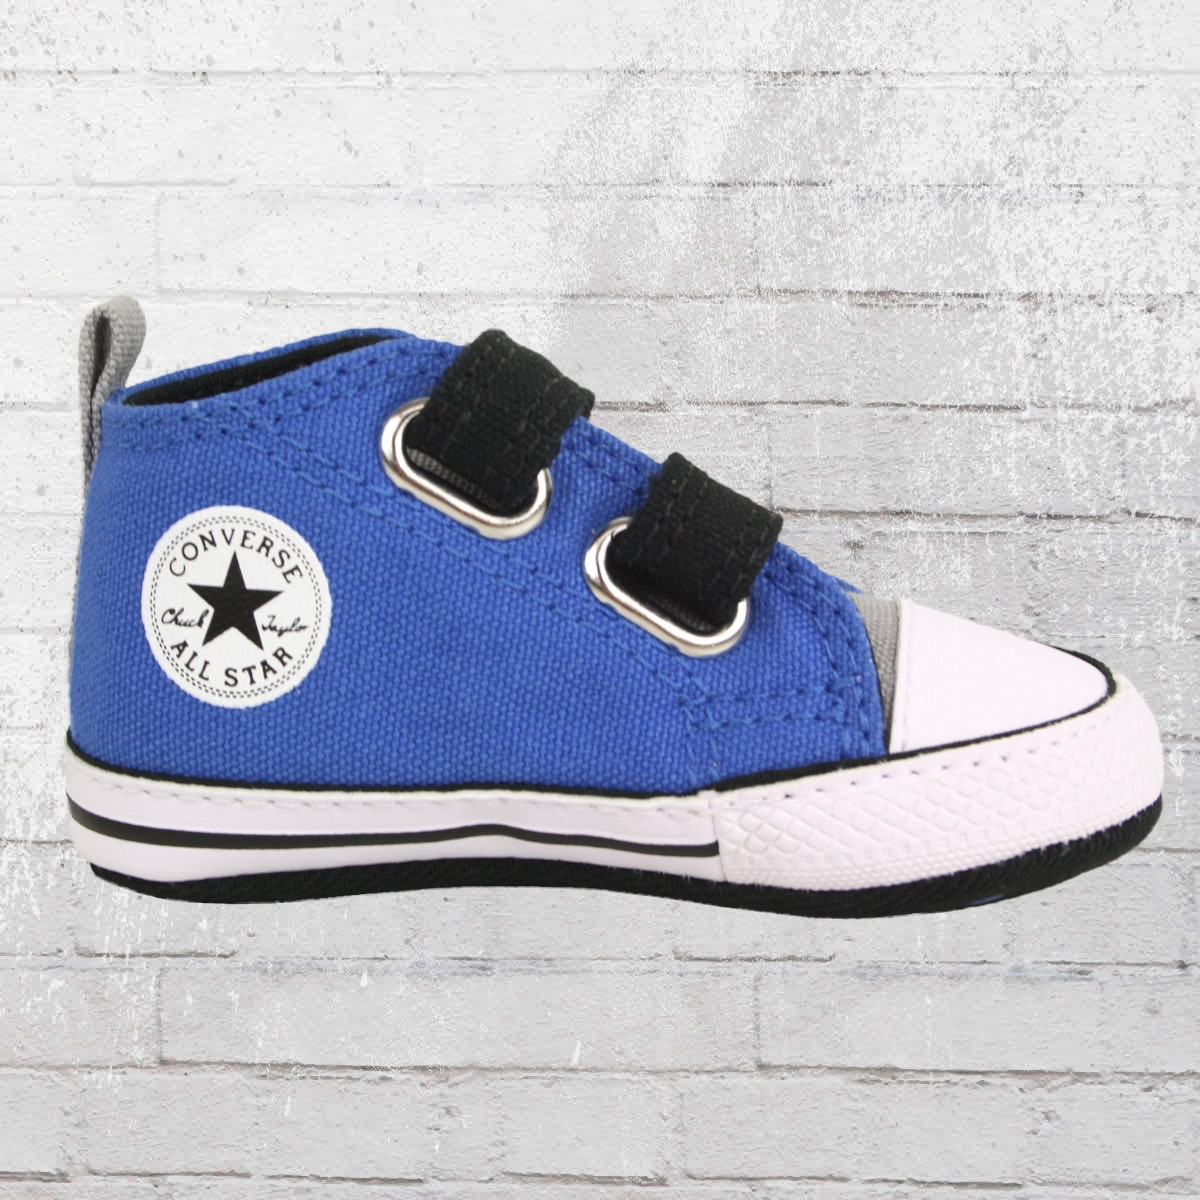 order now converse baby shoes chuck taylor first star 2v. Black Bedroom Furniture Sets. Home Design Ideas